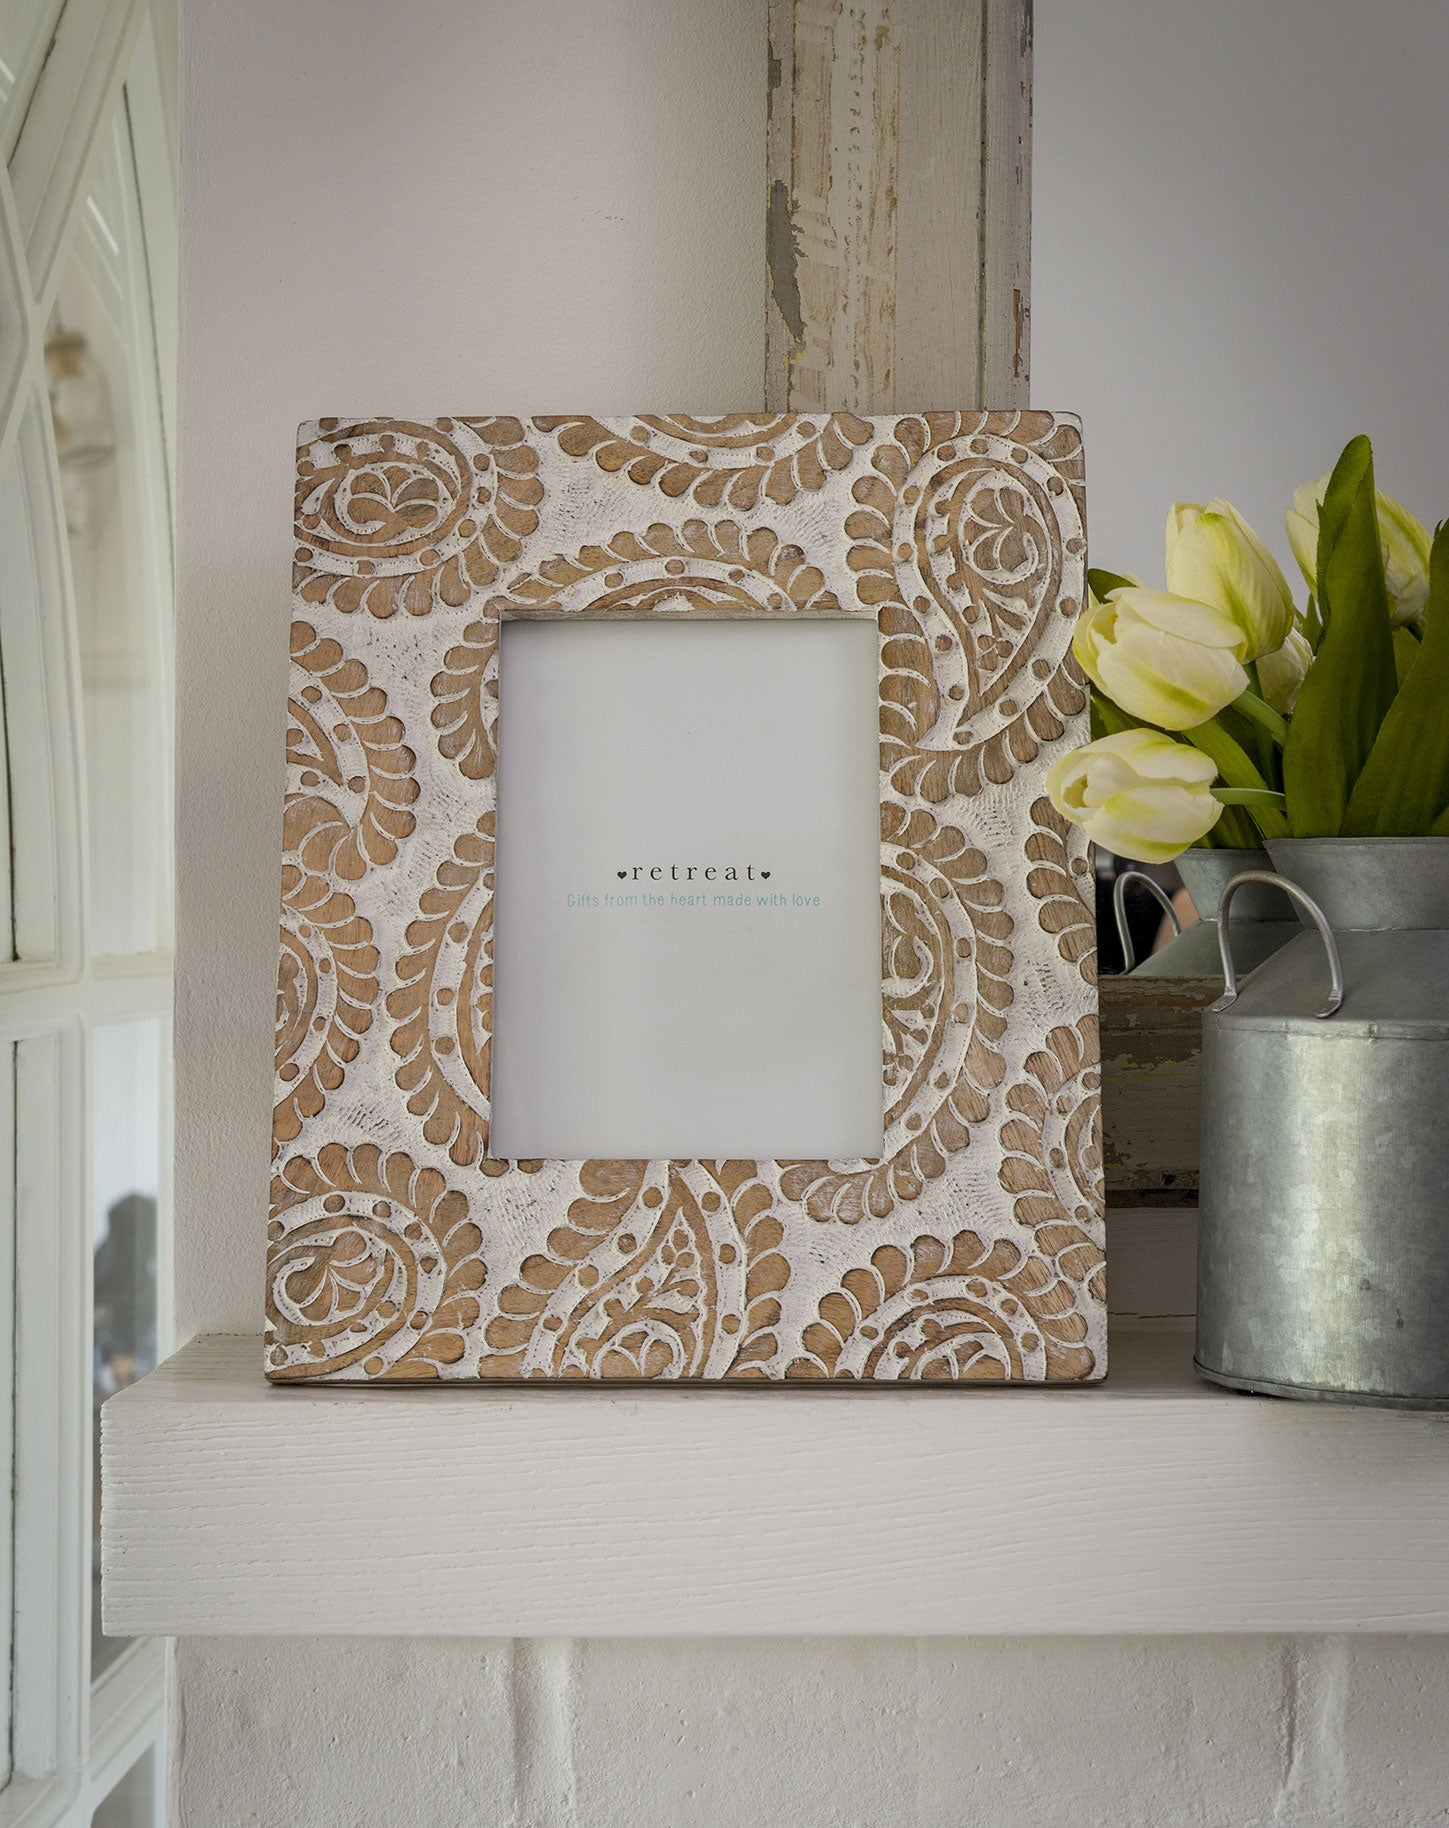 Patterned photo frame 6x4